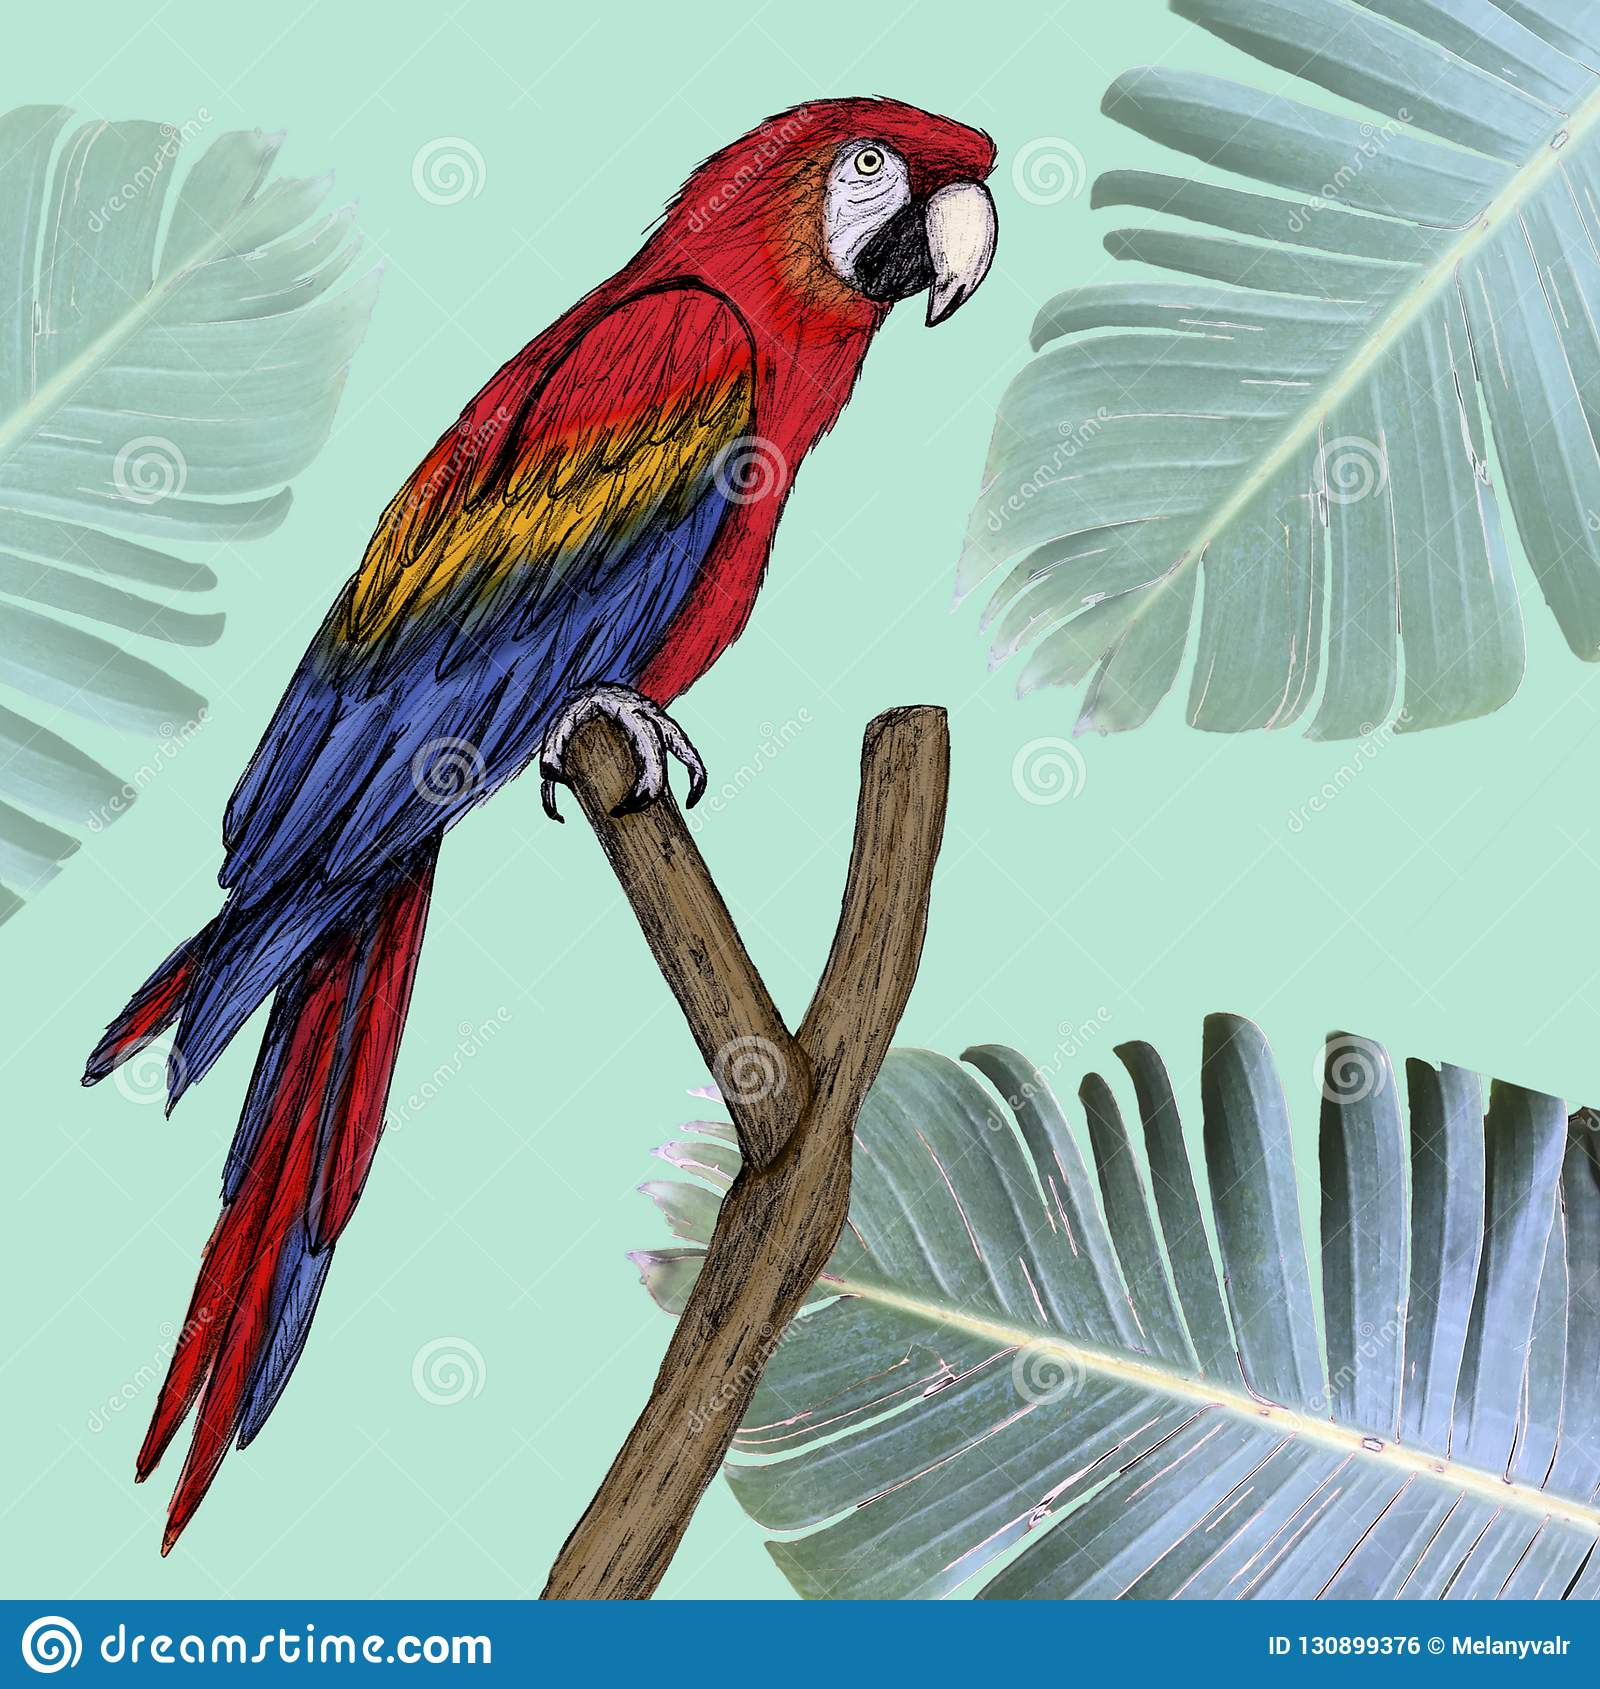 Macaw illustration drawn in pen with digital color